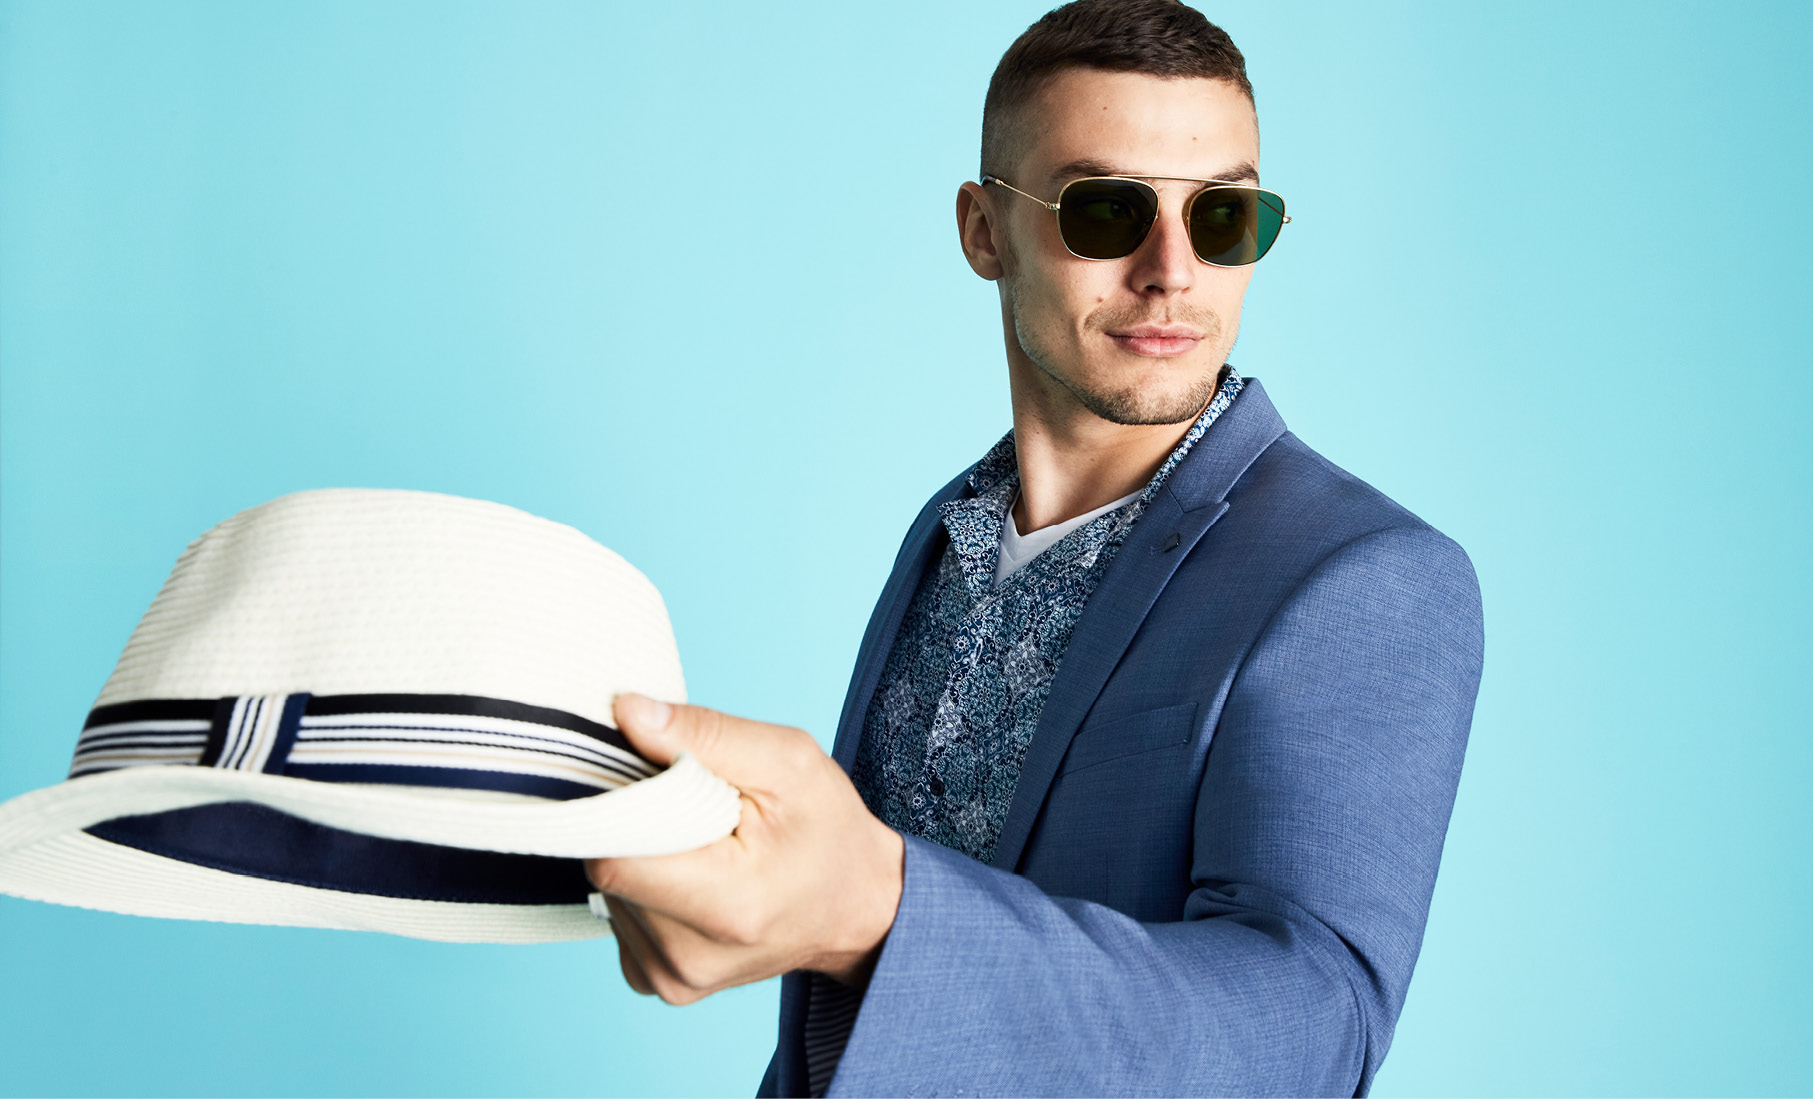 mens summer accessories - hat, glasses and more